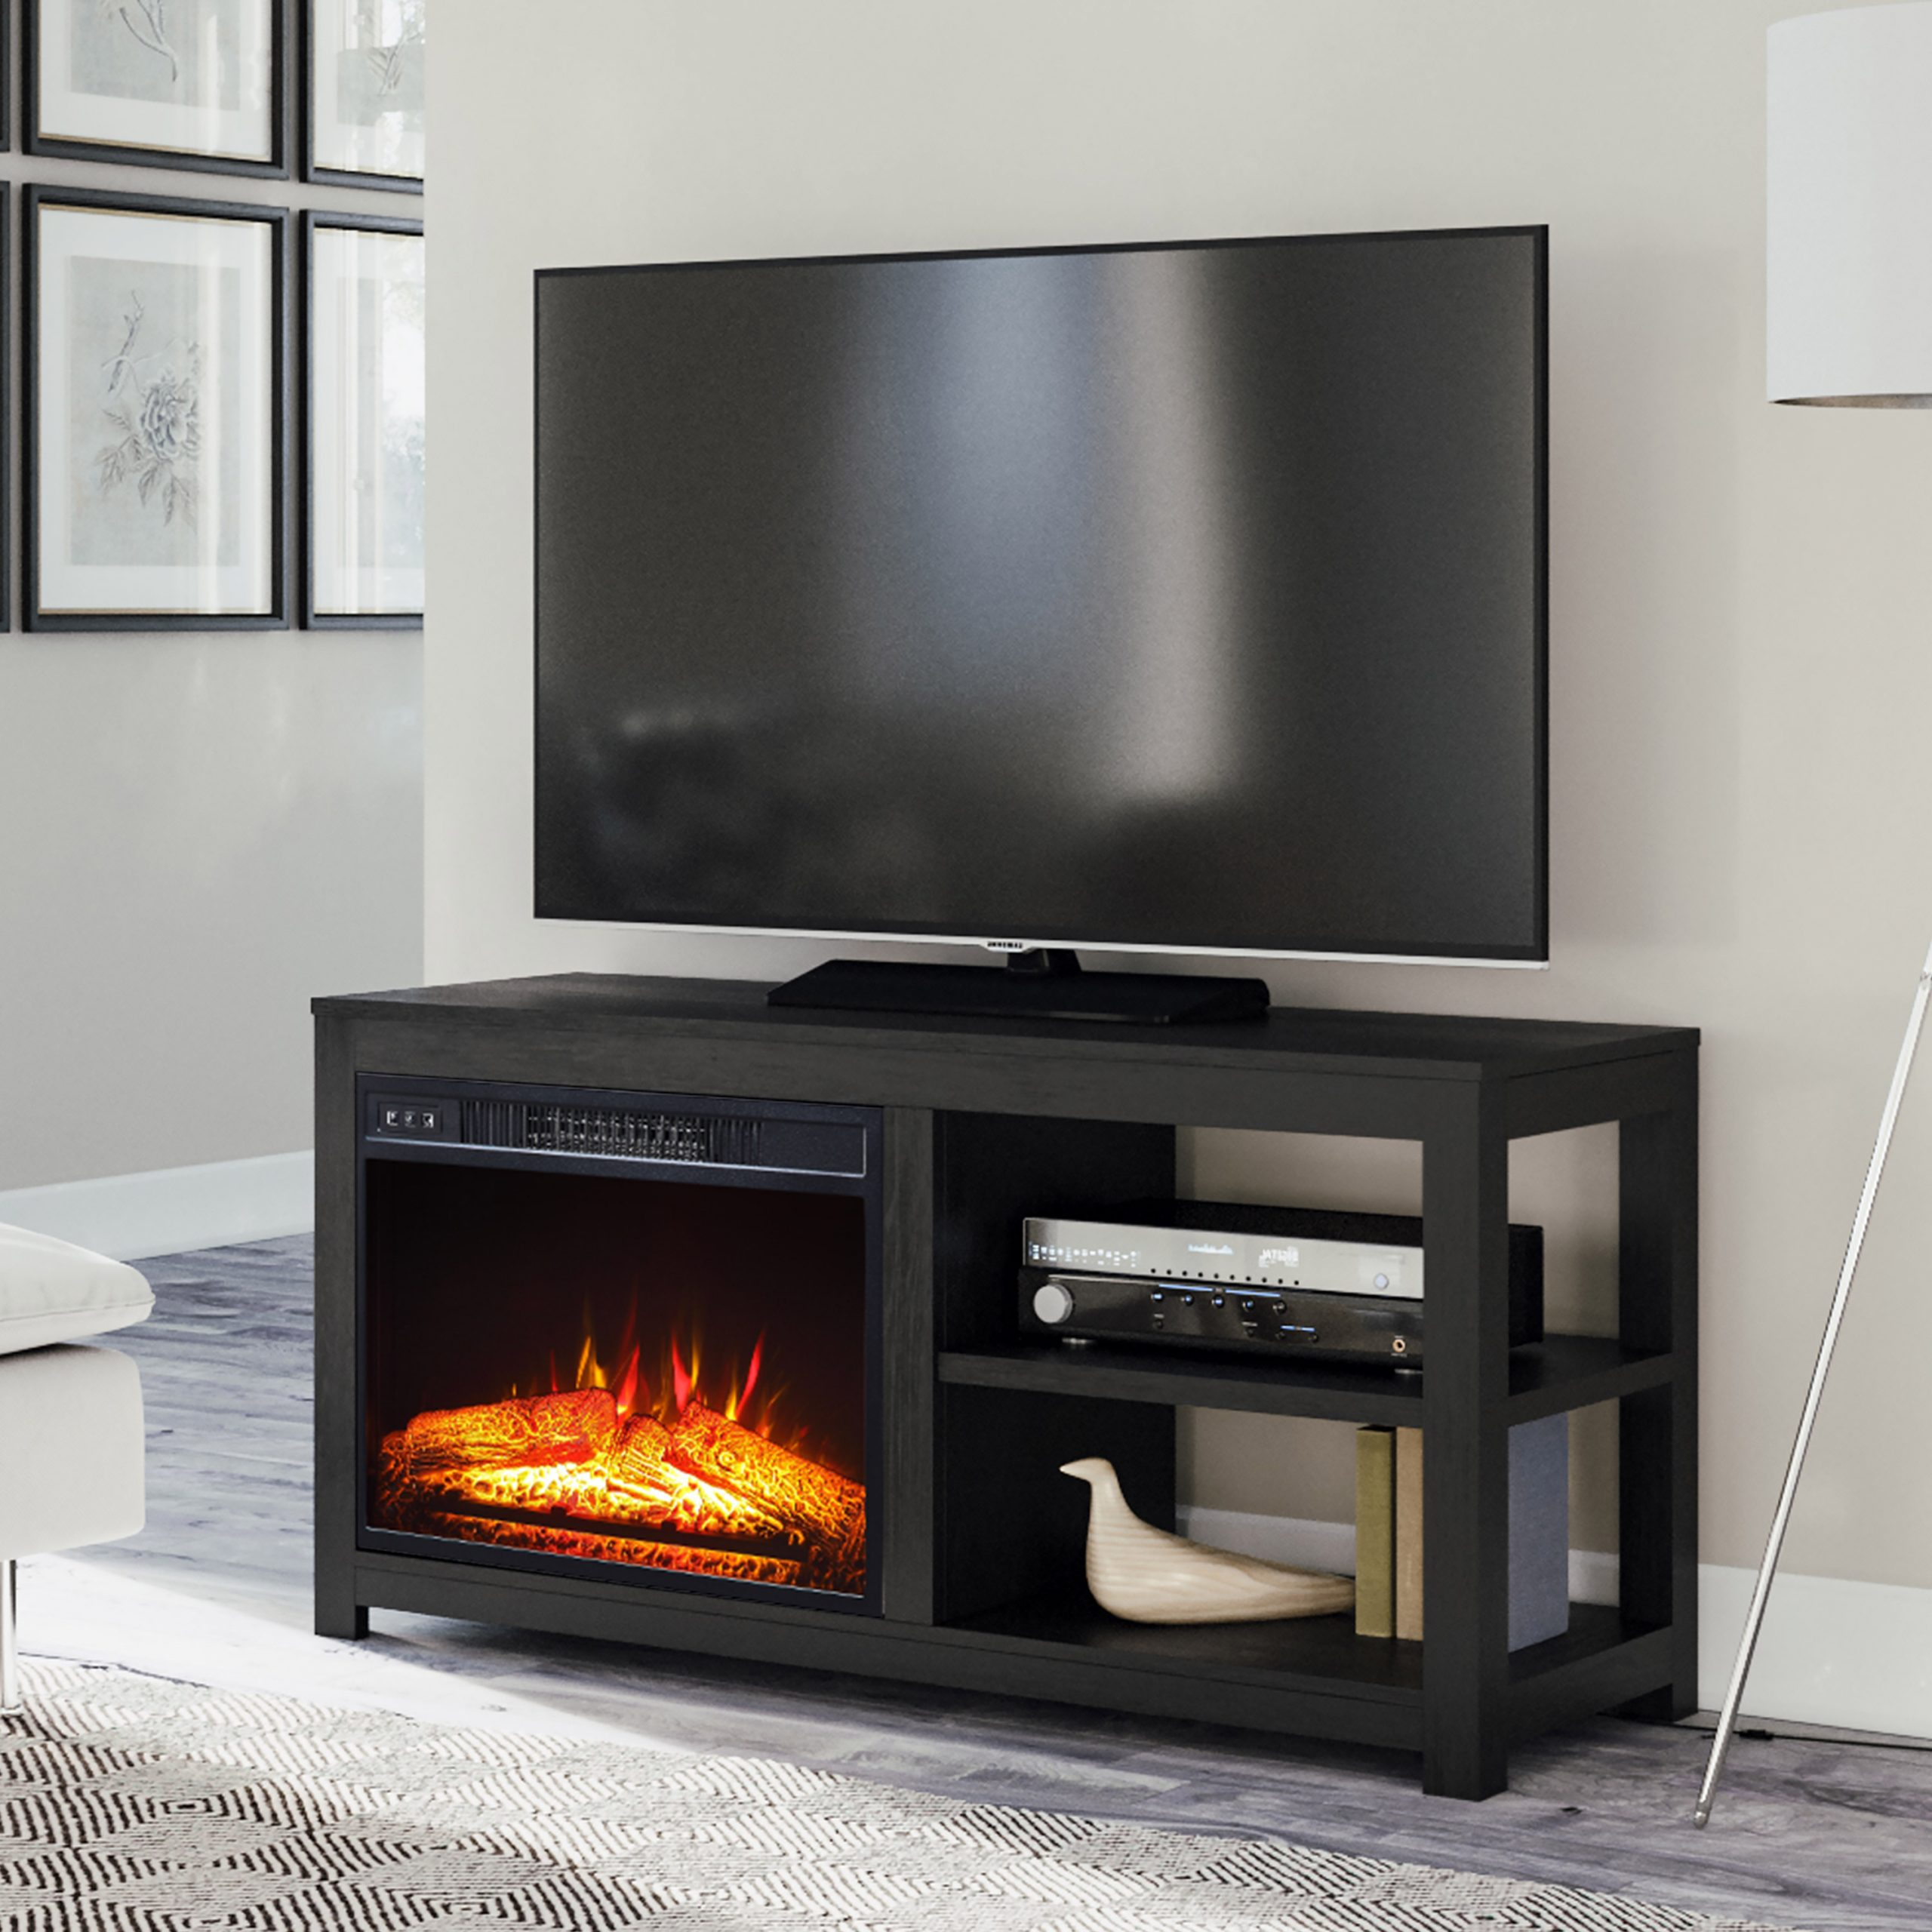 """Most Up To Date Mainstays 2 Shelf Media Fireplace Tv Stand For Flat Panel Pertaining To Adayah Tv Stands For Tvs Up To 60"""" (View 9 of 25)"""